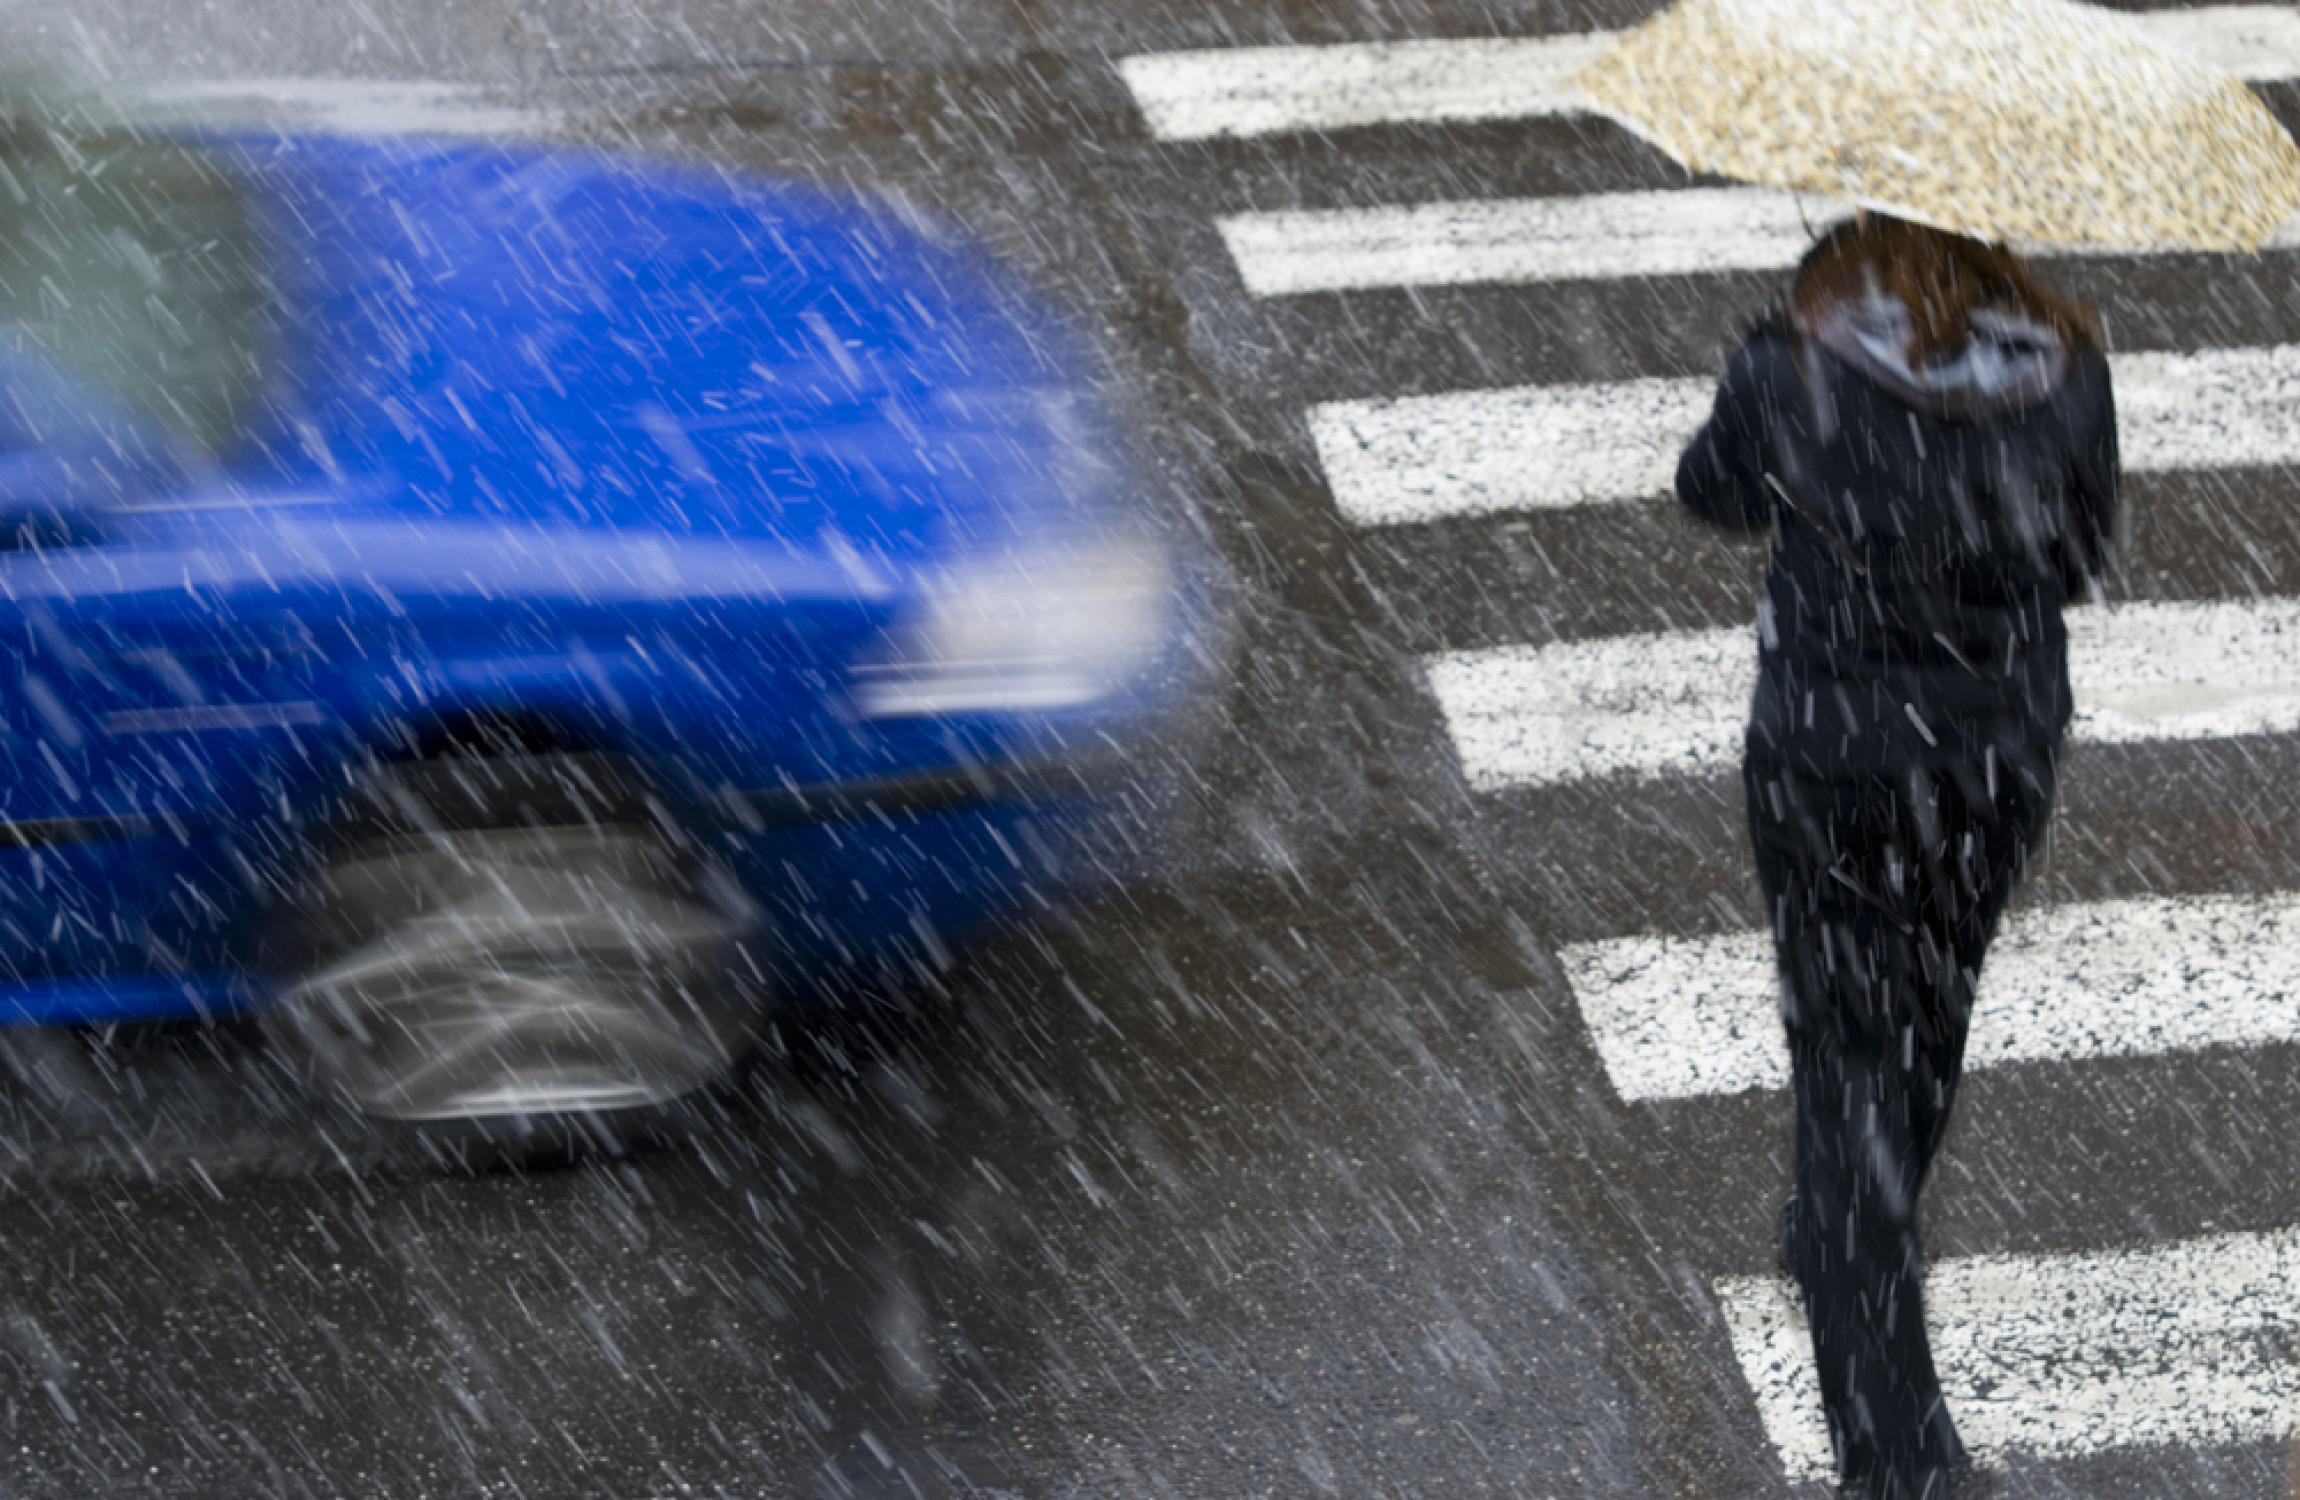 Heavy rain and flooding followed by polar conditions possibly snow